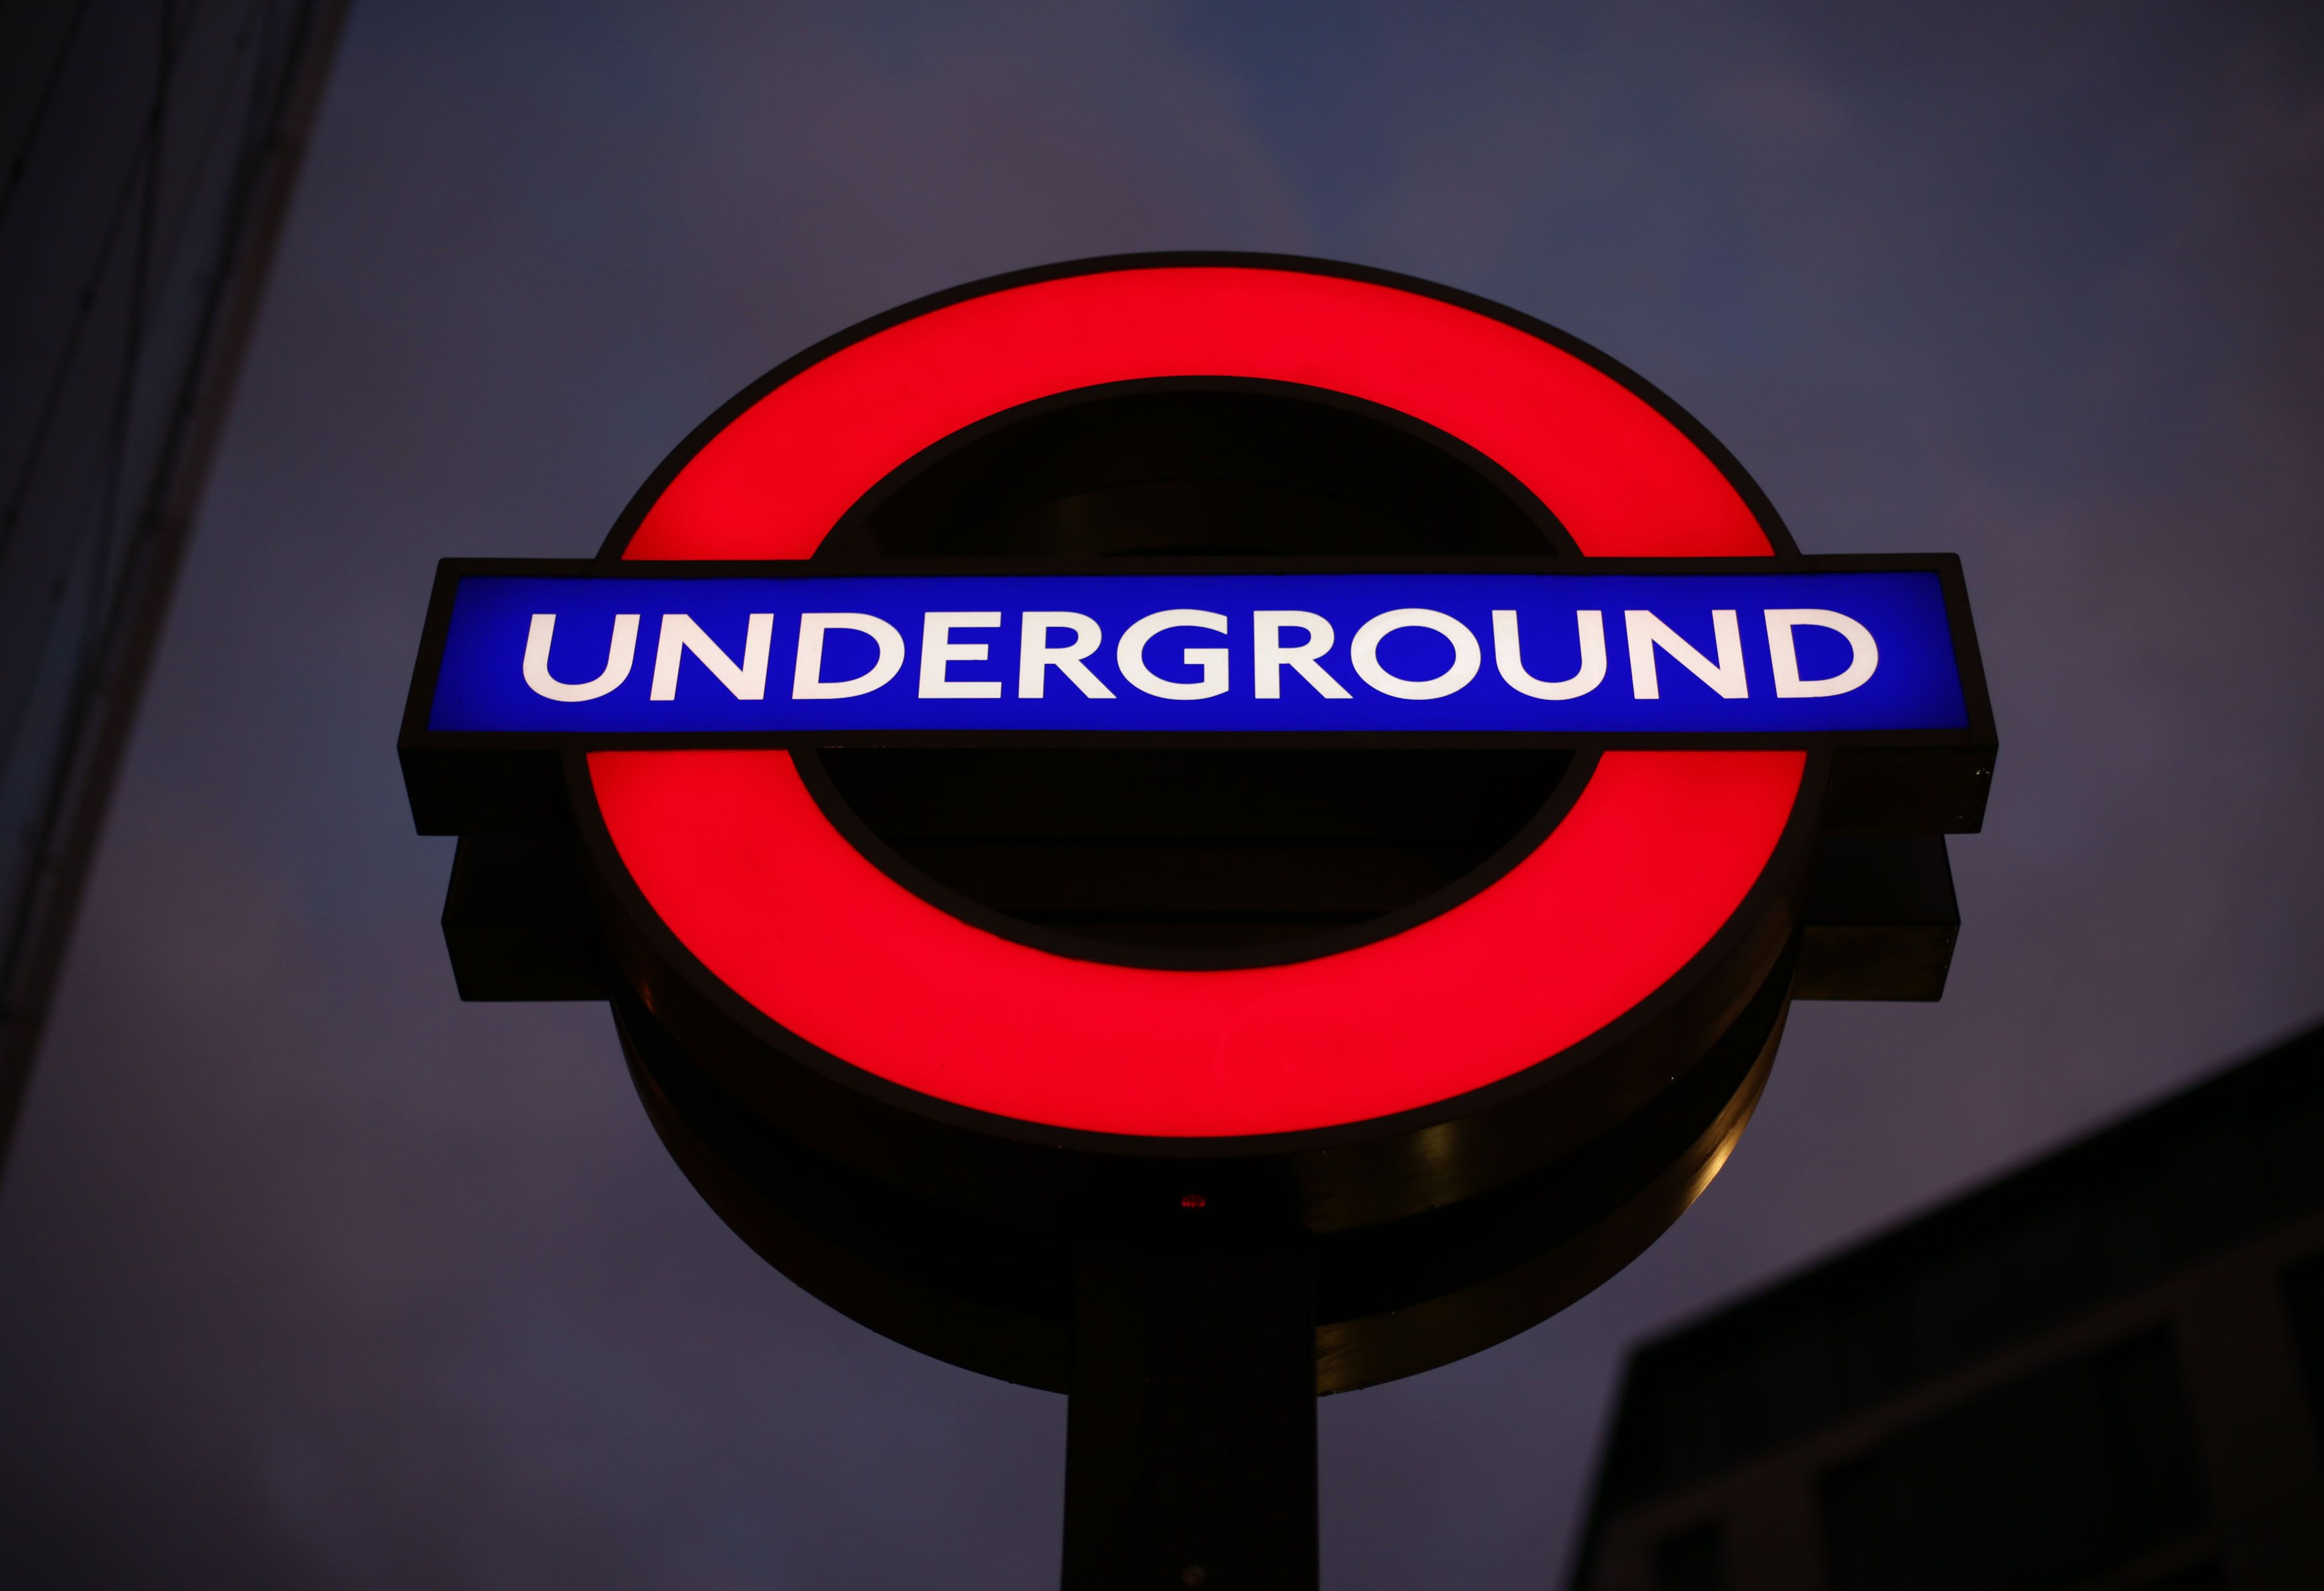 Up To 1,400 Transport For London Jobs To Be Cut 'Due To Spending Cuts', Union